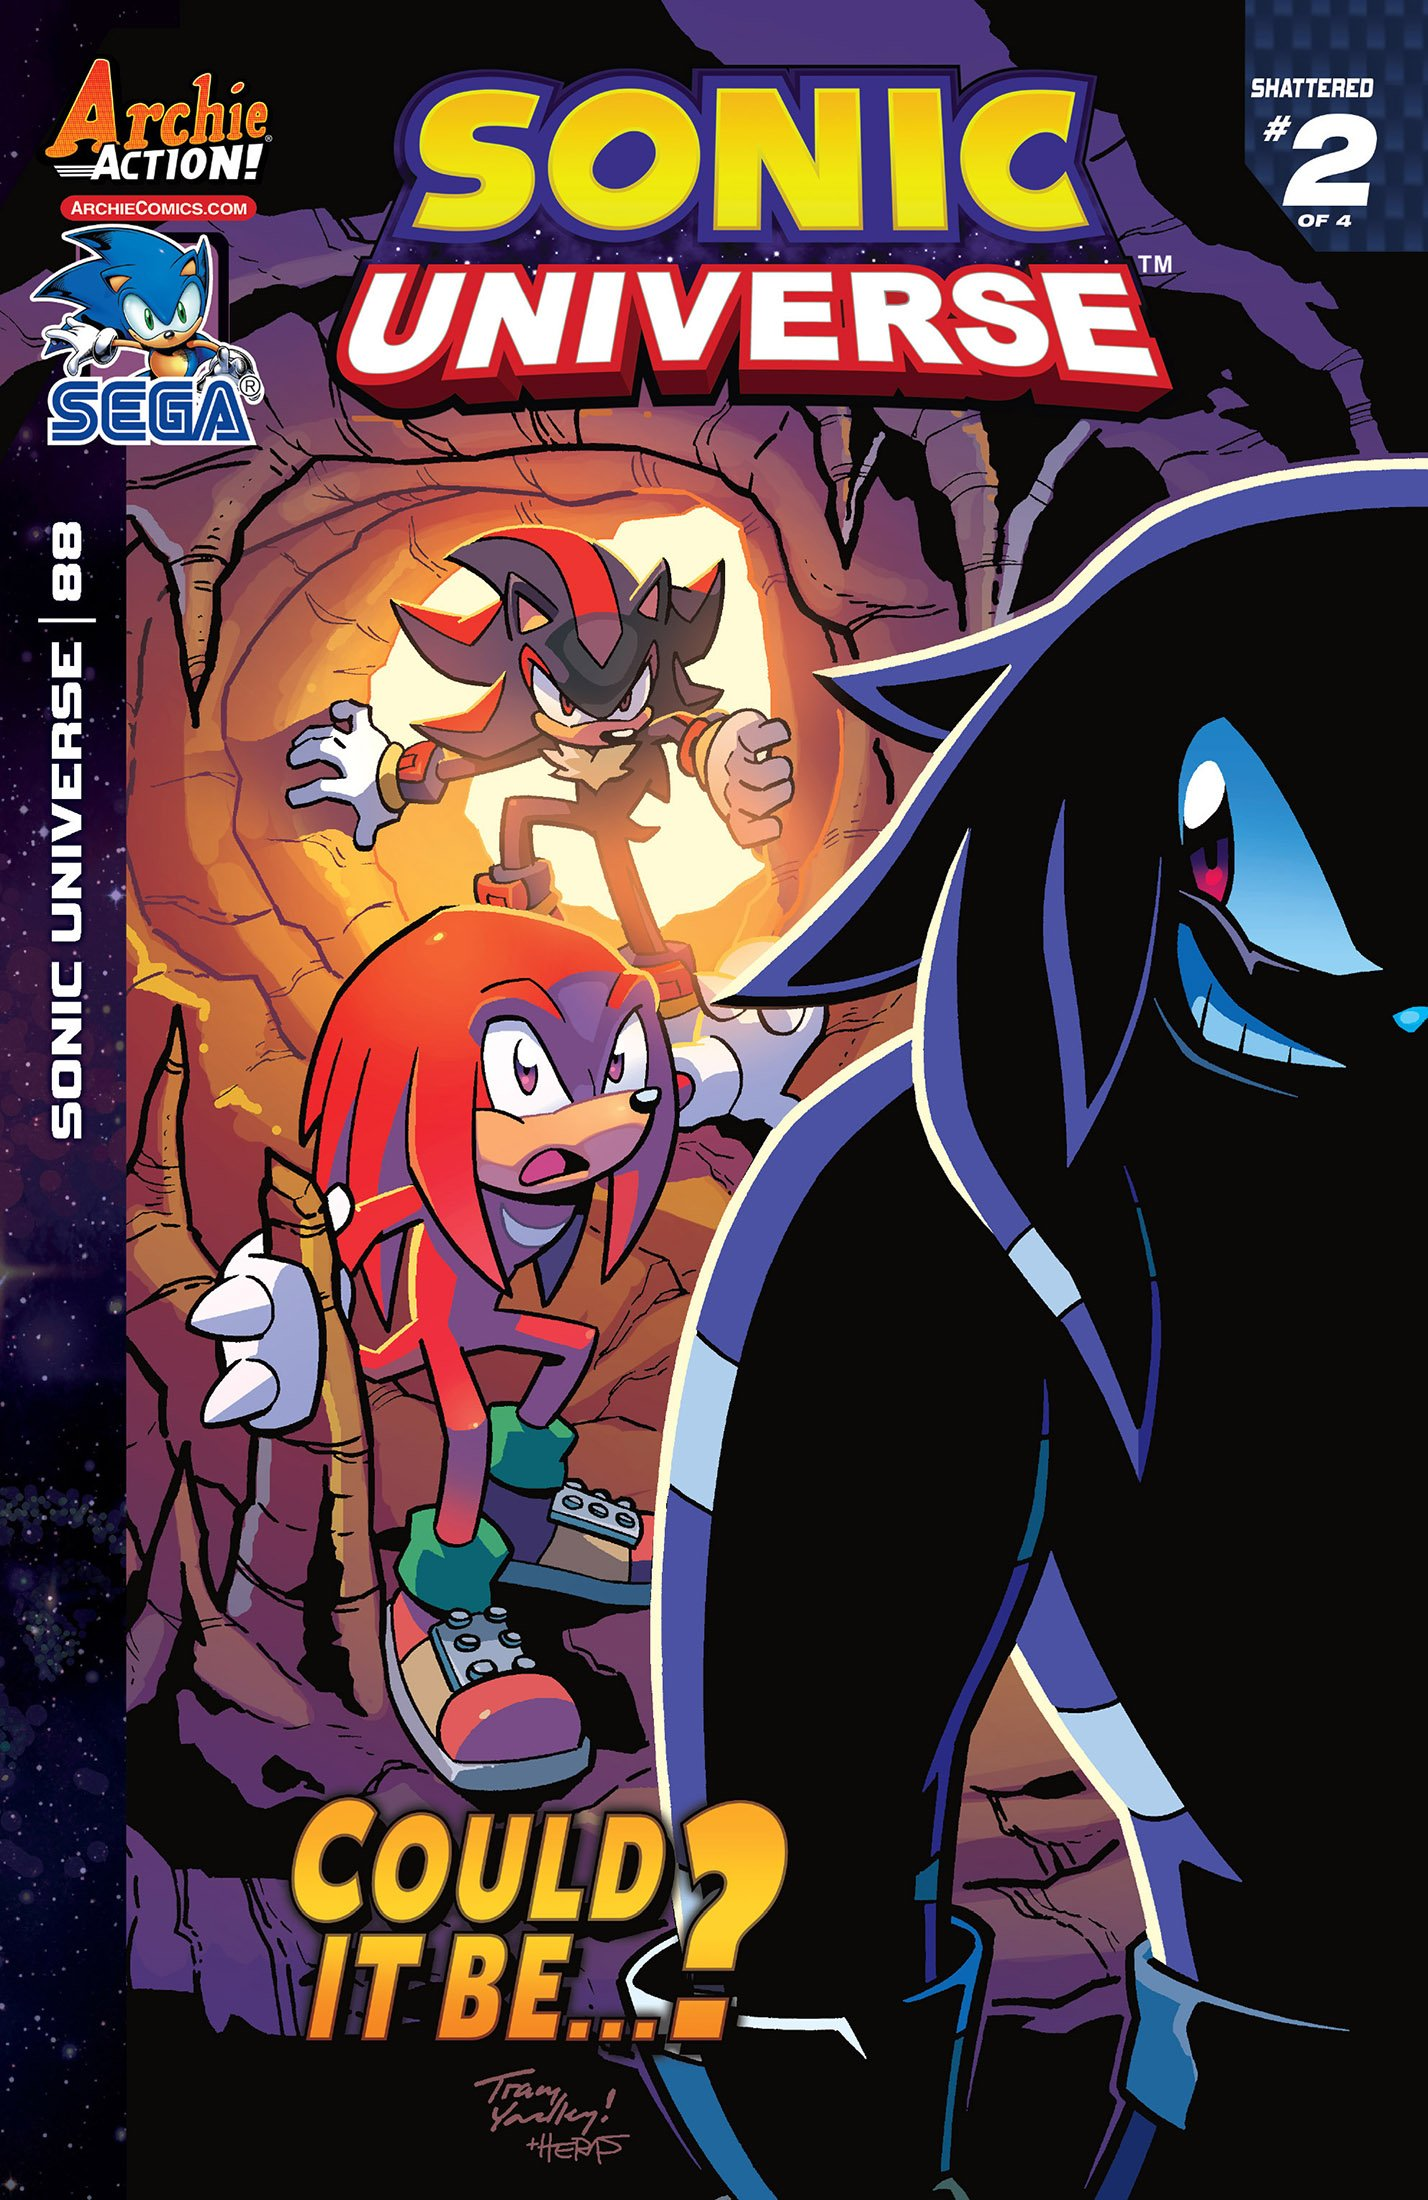 Sonic Universe 088 (October 2016)